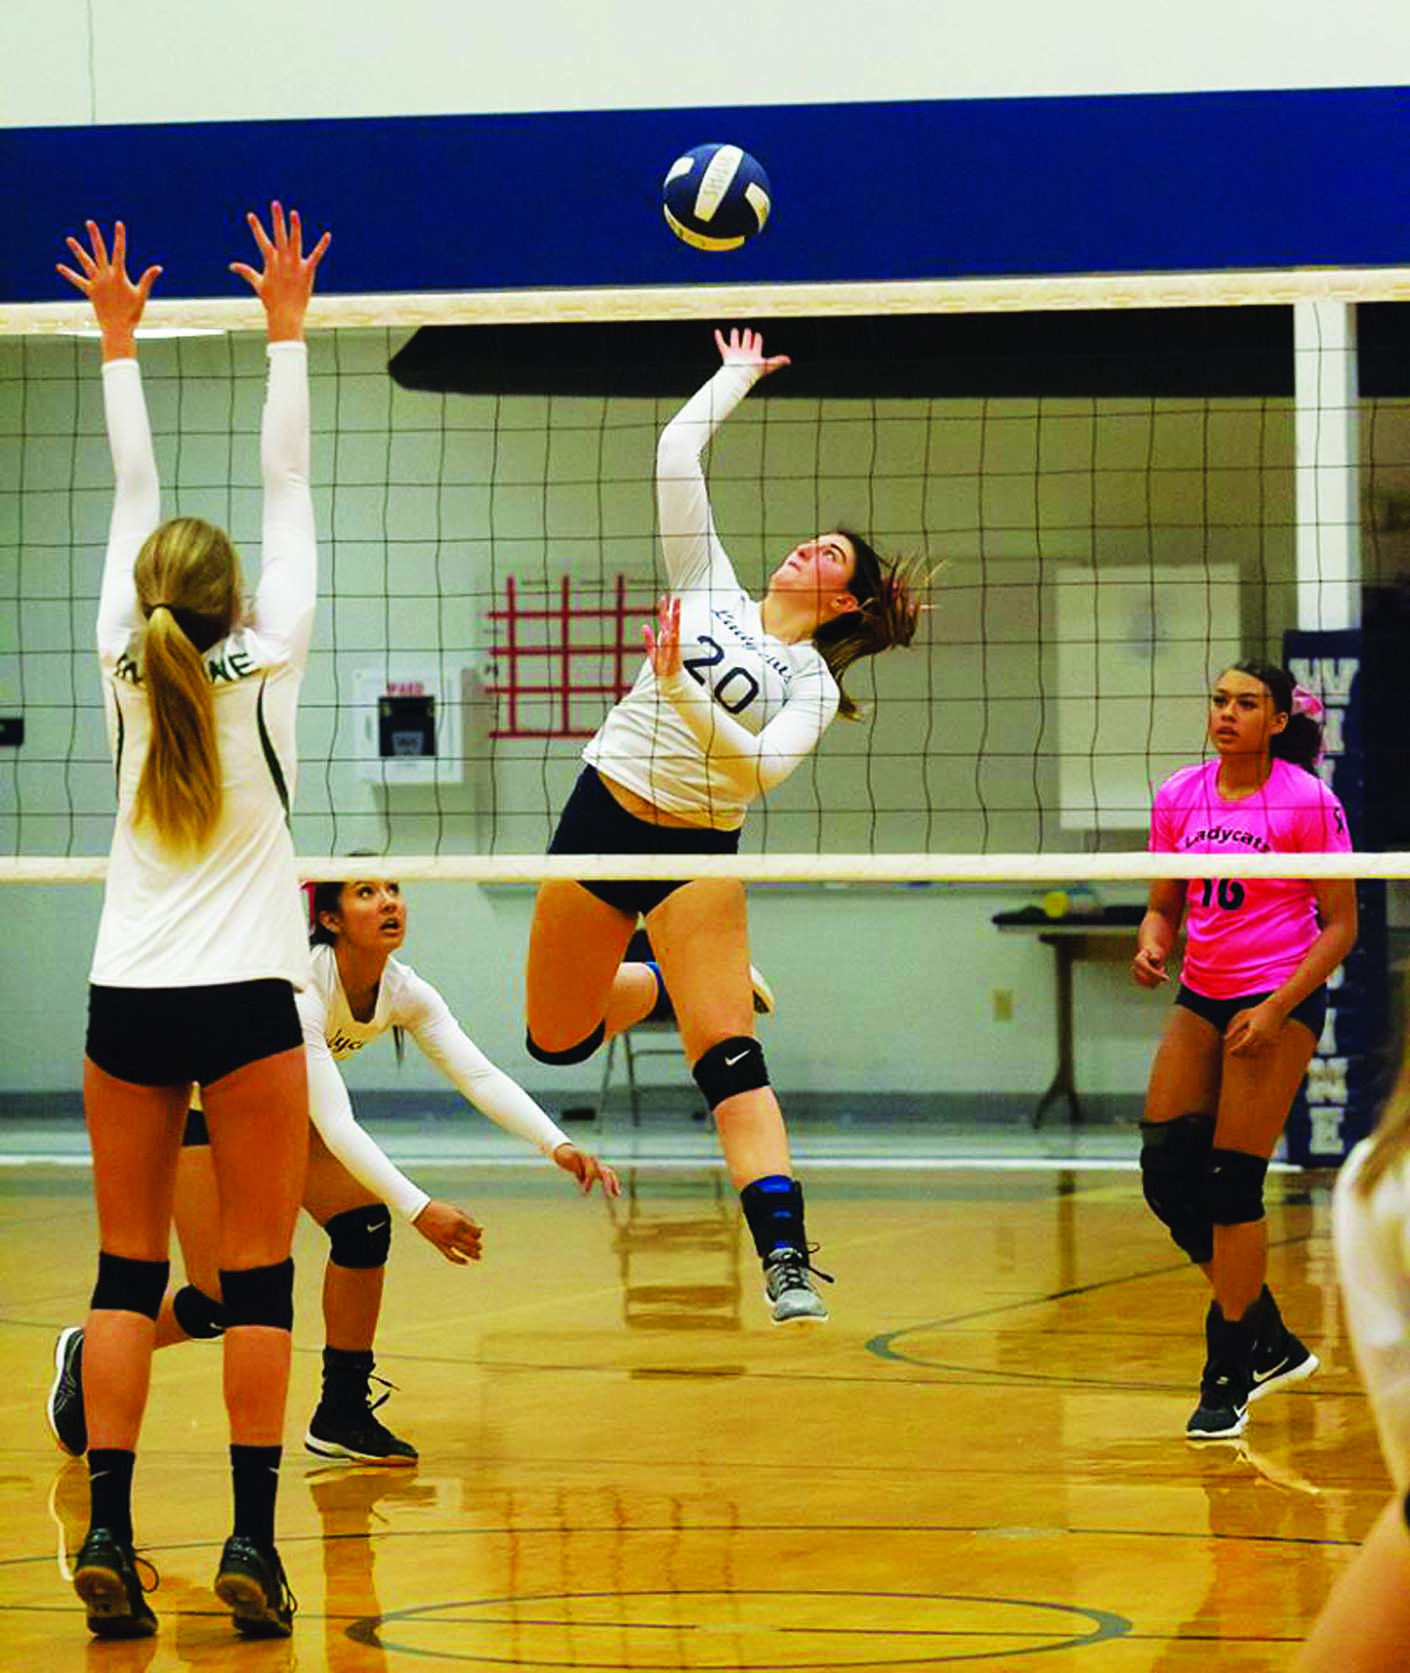 Ladycats in third place after split matches